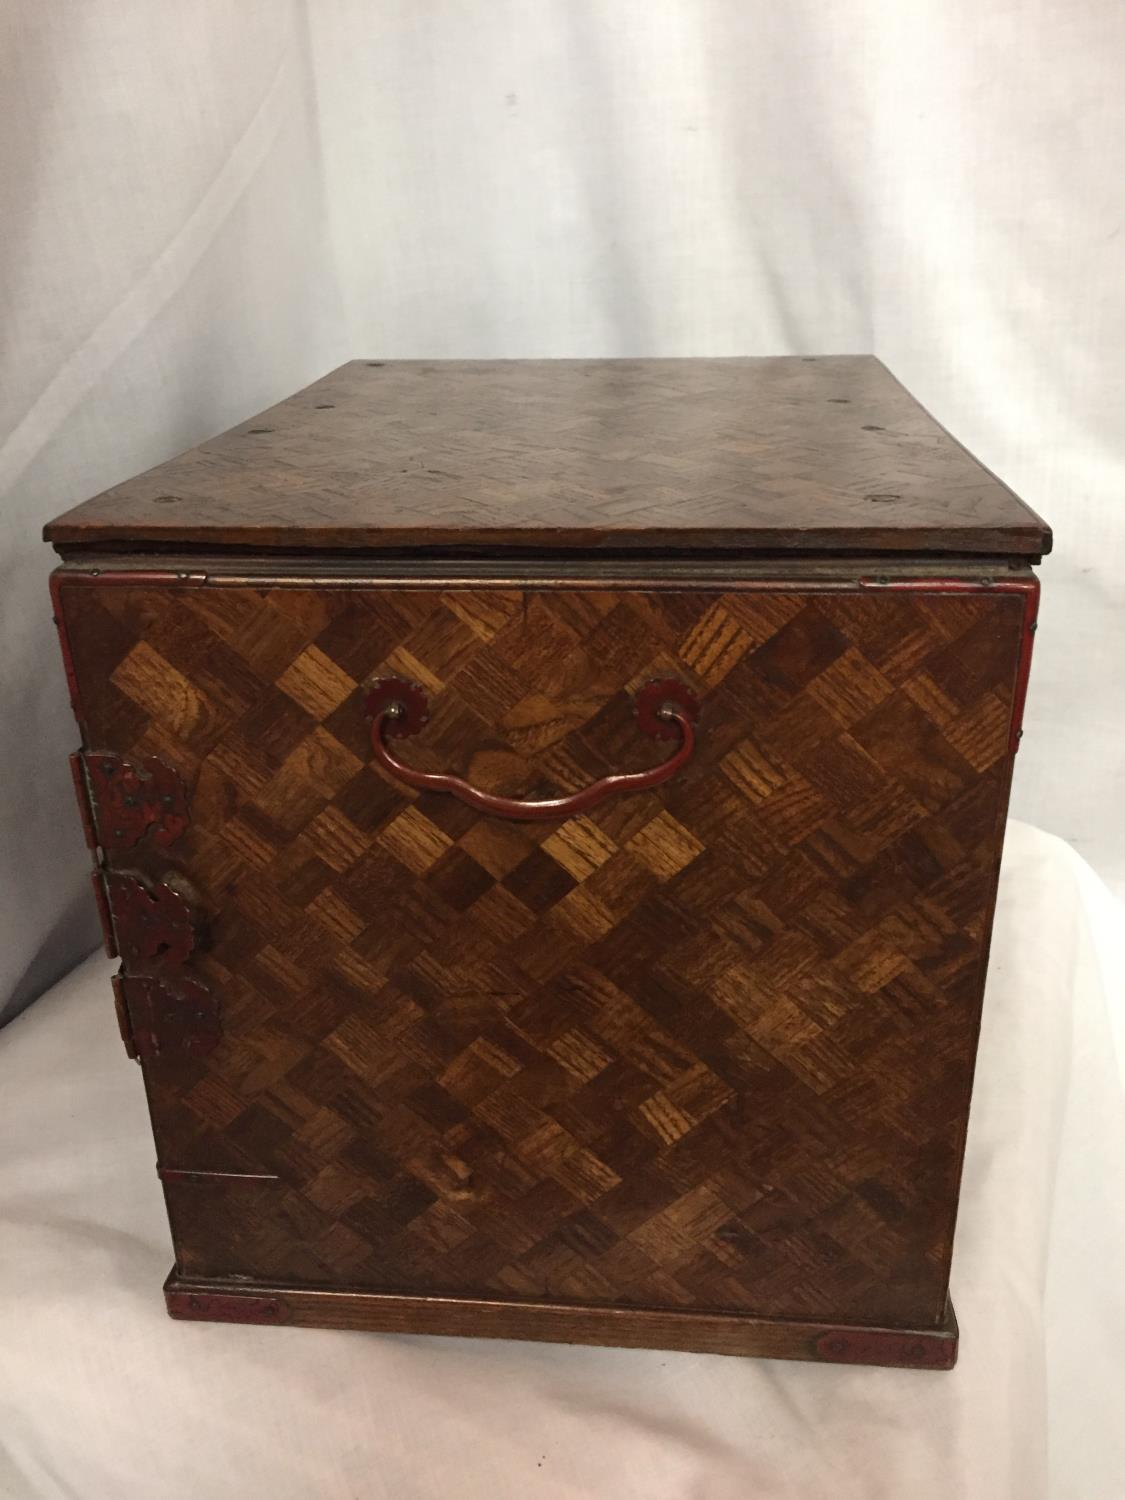 A MINATURE PARQUE WOODEN CHEST WITH DRAWERS 32CM X 26CM - Image 6 of 6